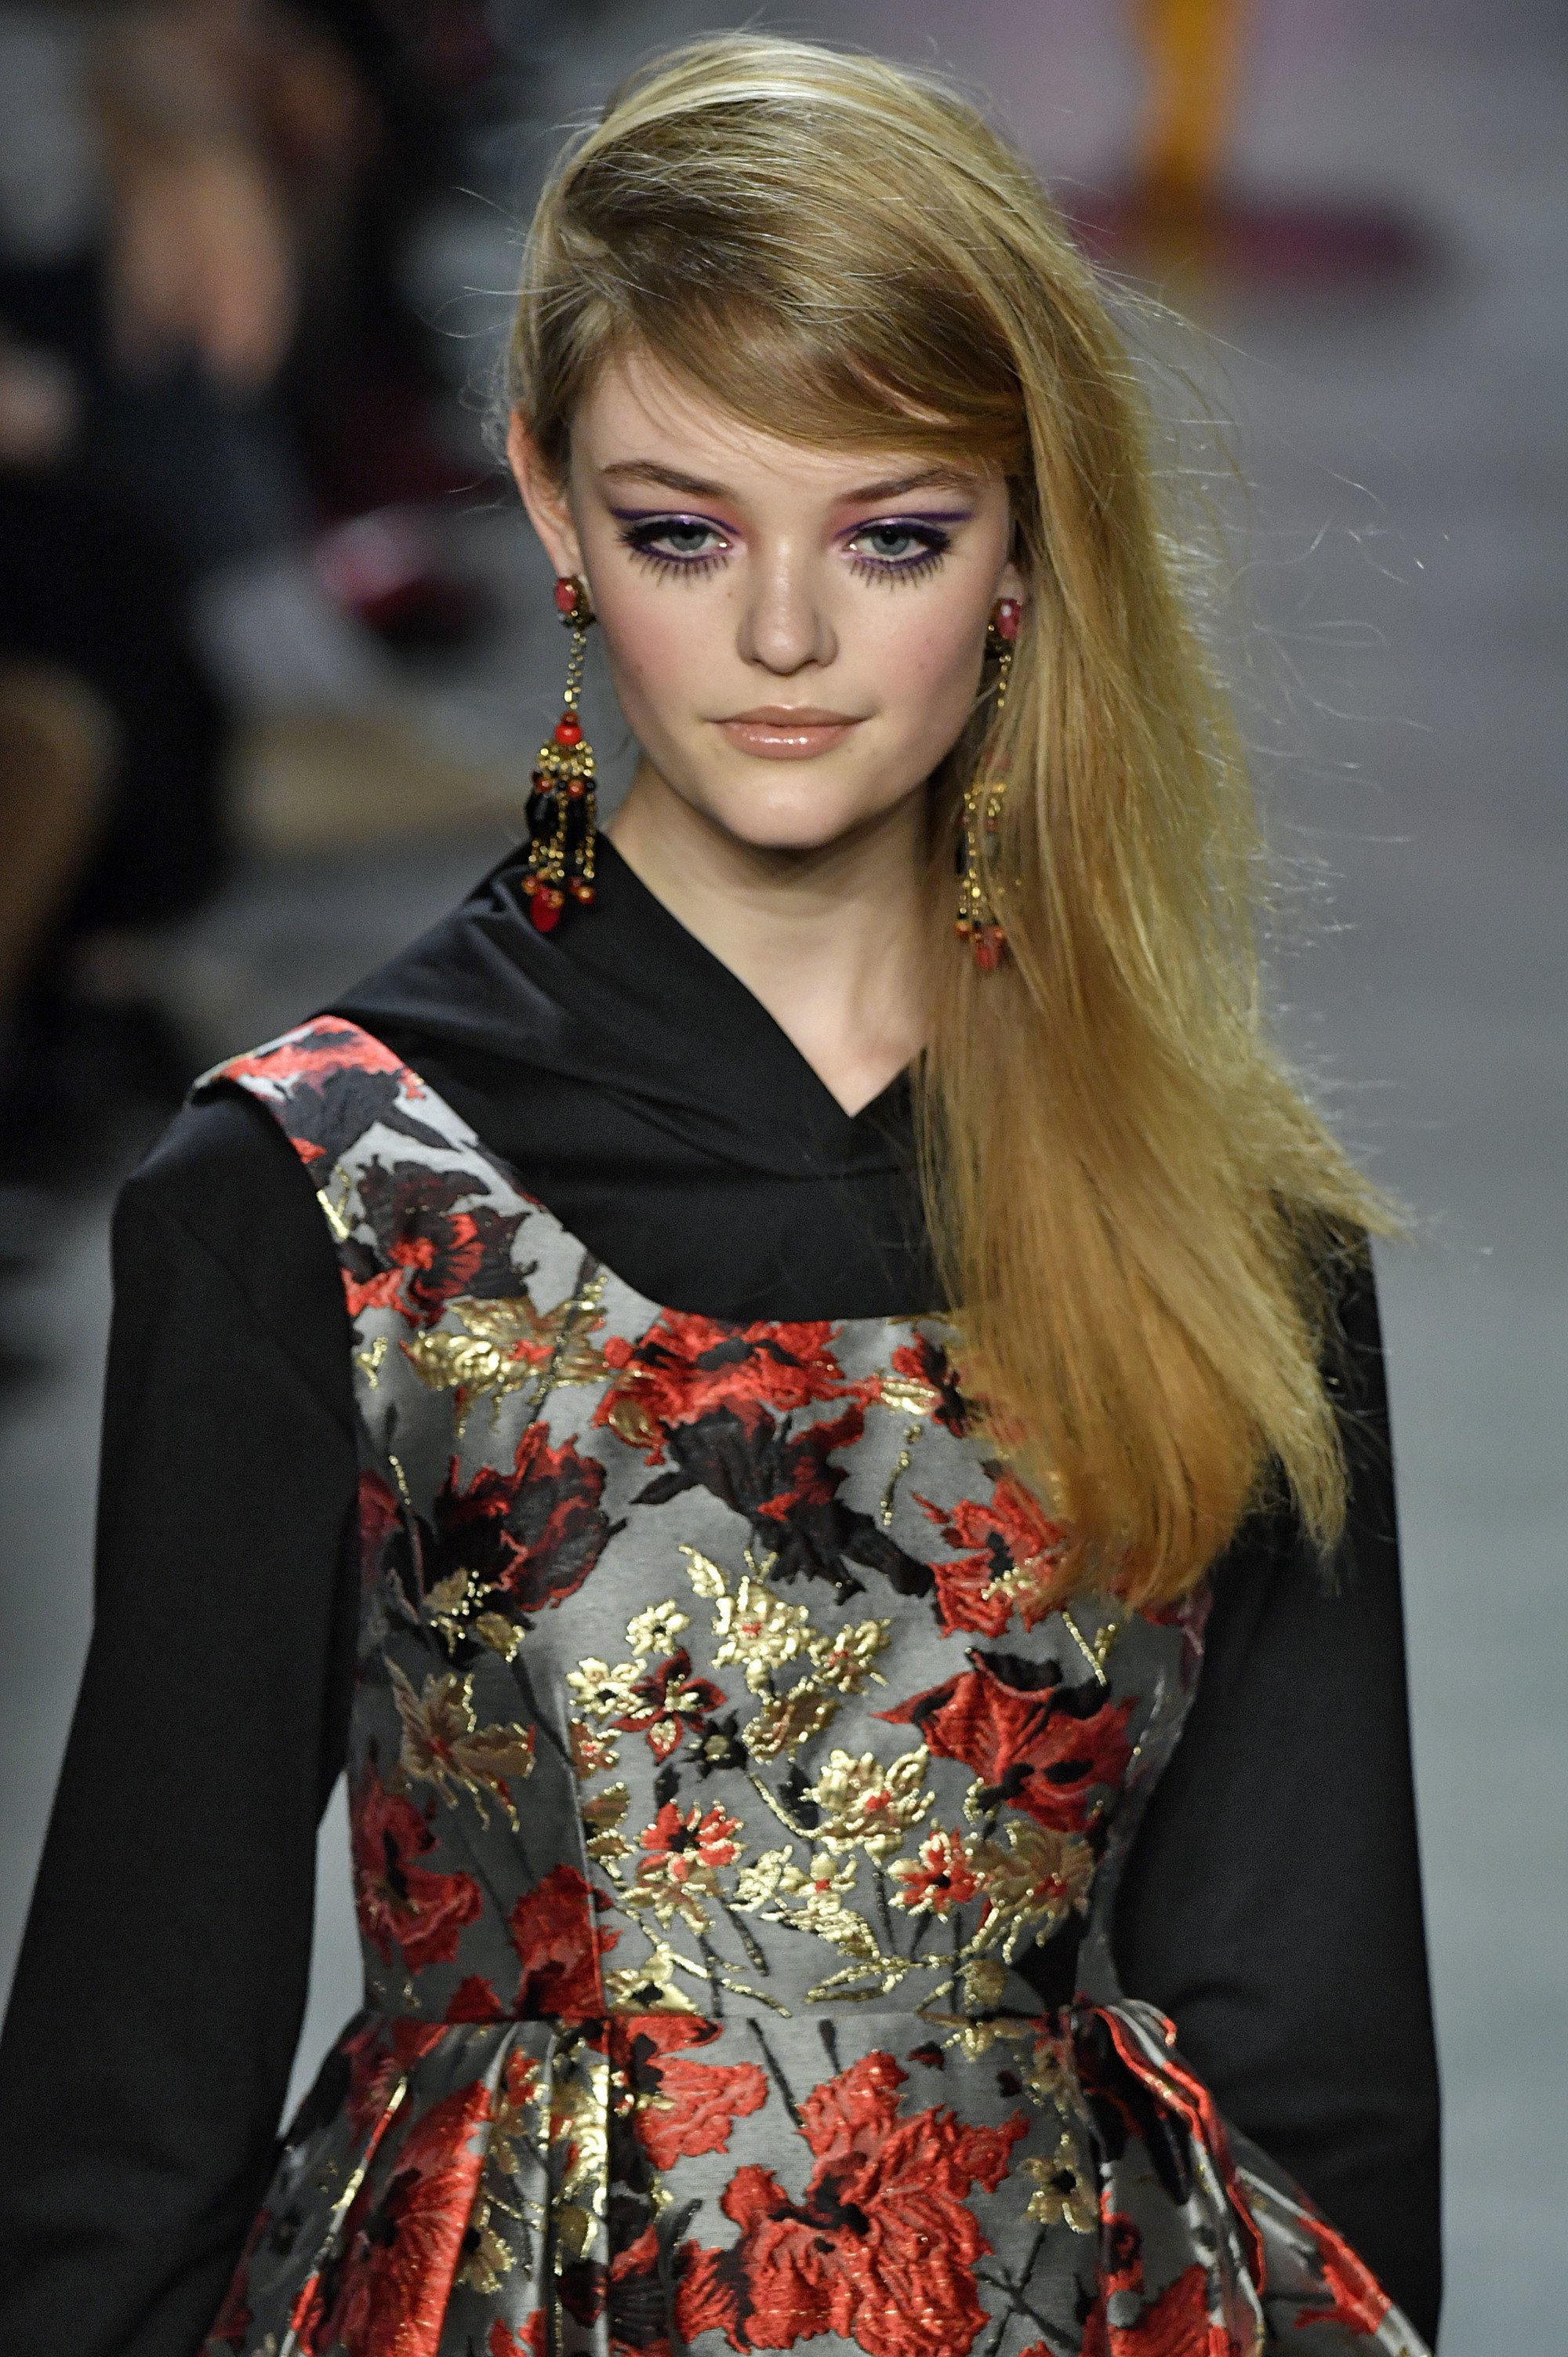 blonde model with long hair in deep side parting with sweeping fringe wearing dark floral pattern dress at runway show